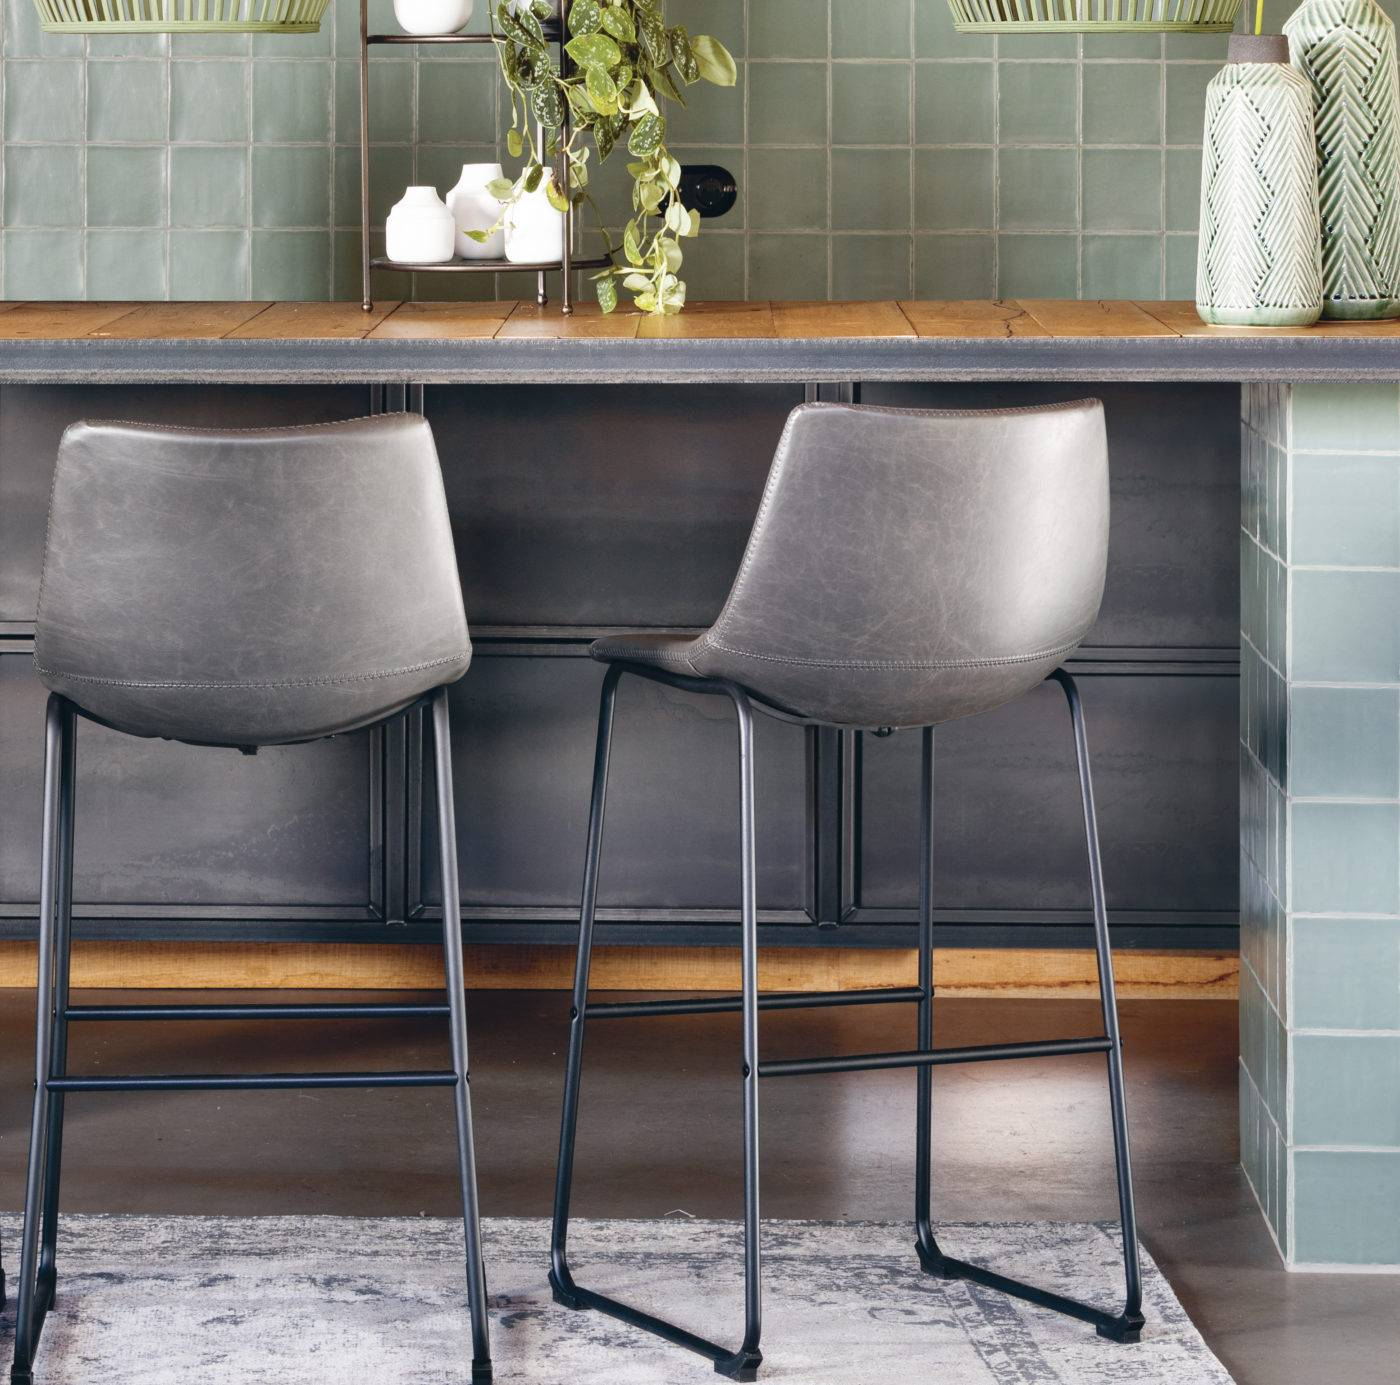 jeddo bar stools at counter